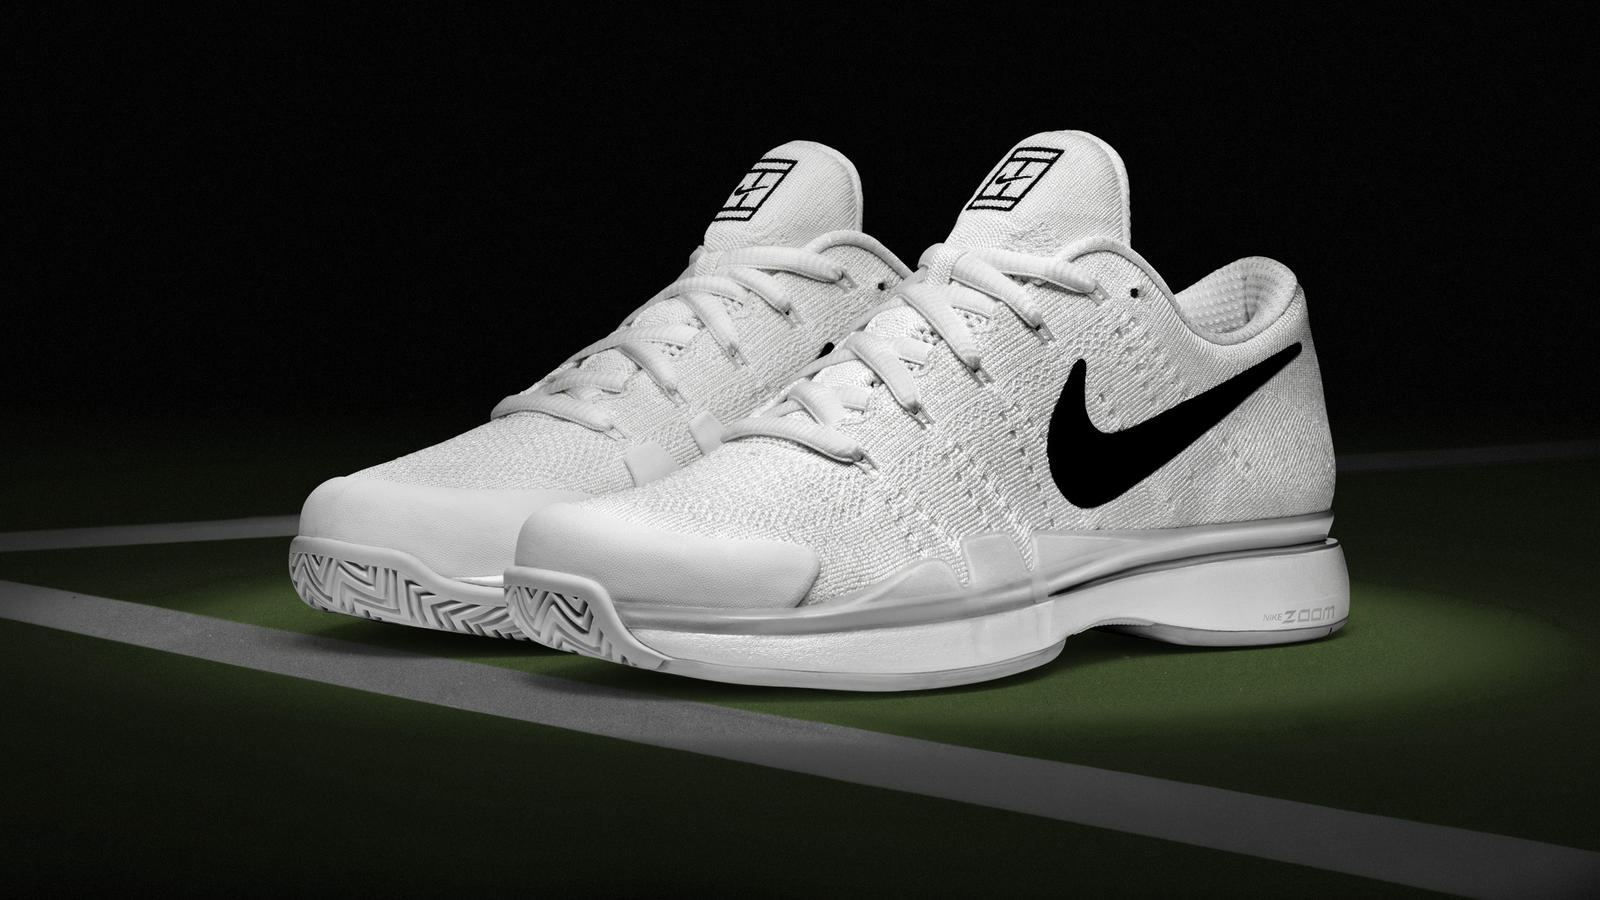 24afd7231b7f5 Fit for Federer: The NikeCourt Zoom Vapor 9.5 Flyknit - Nike News